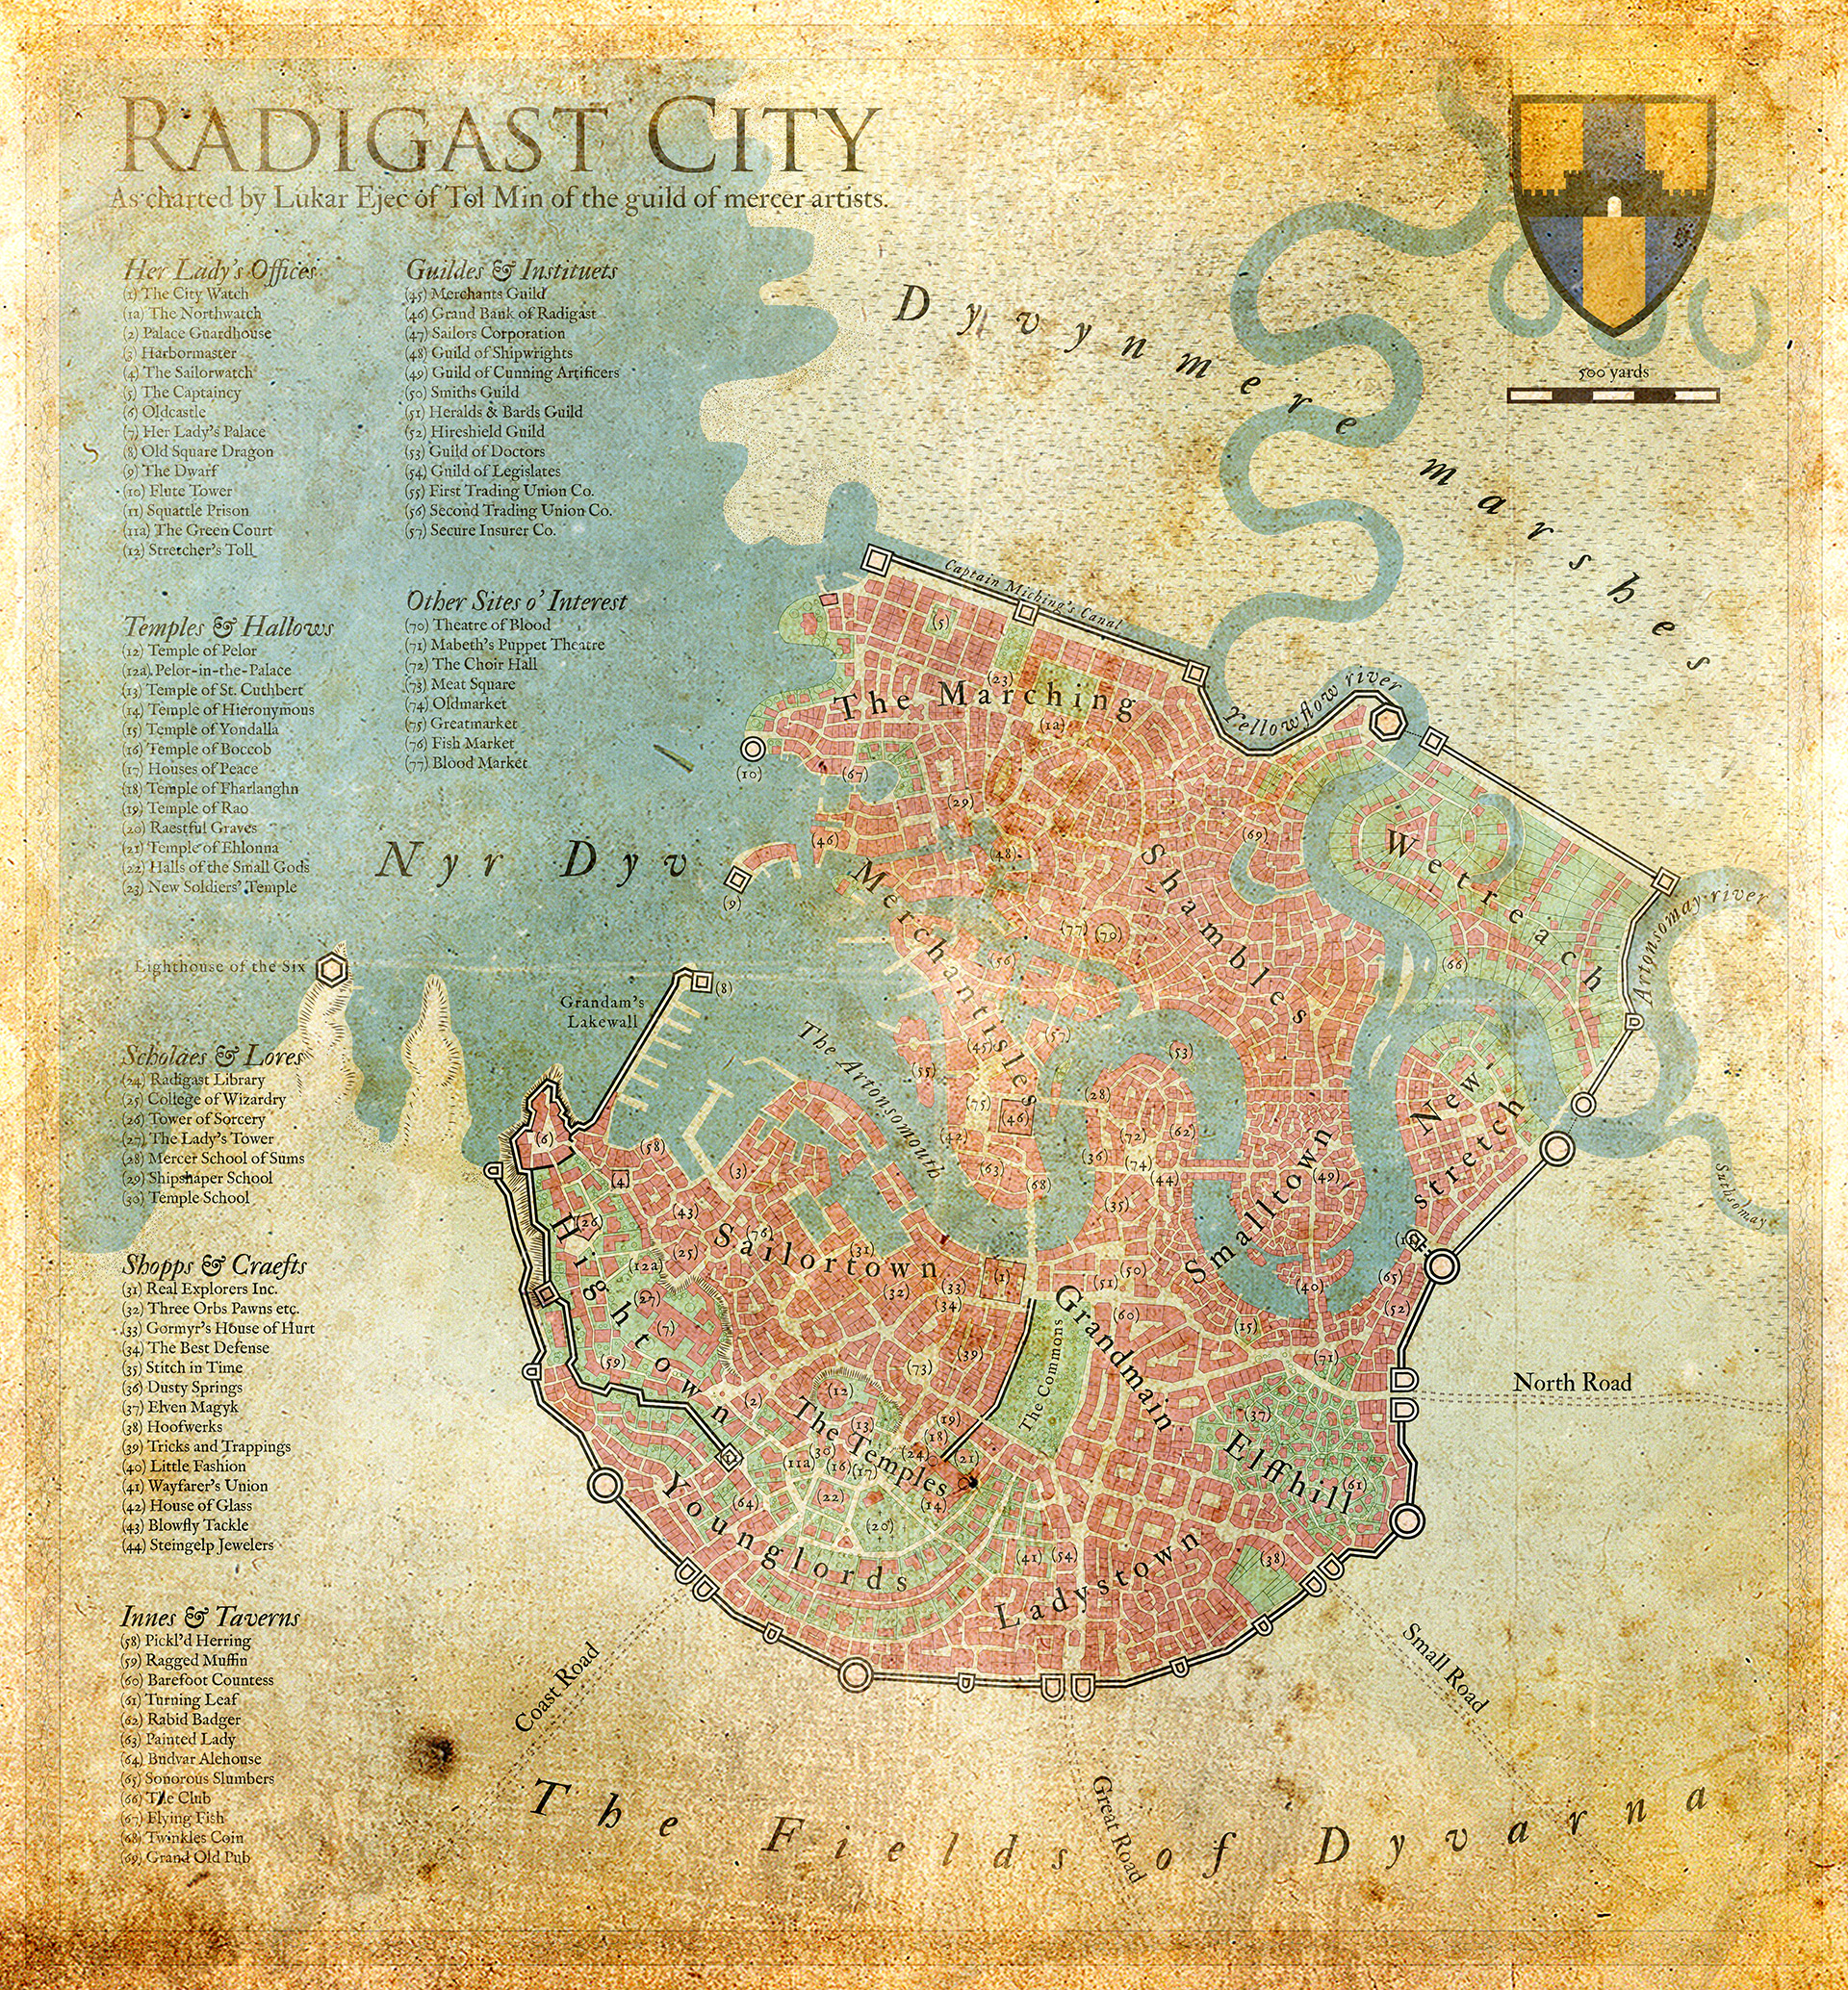 An aged map of the City of Radigast (Greyhawk setting).